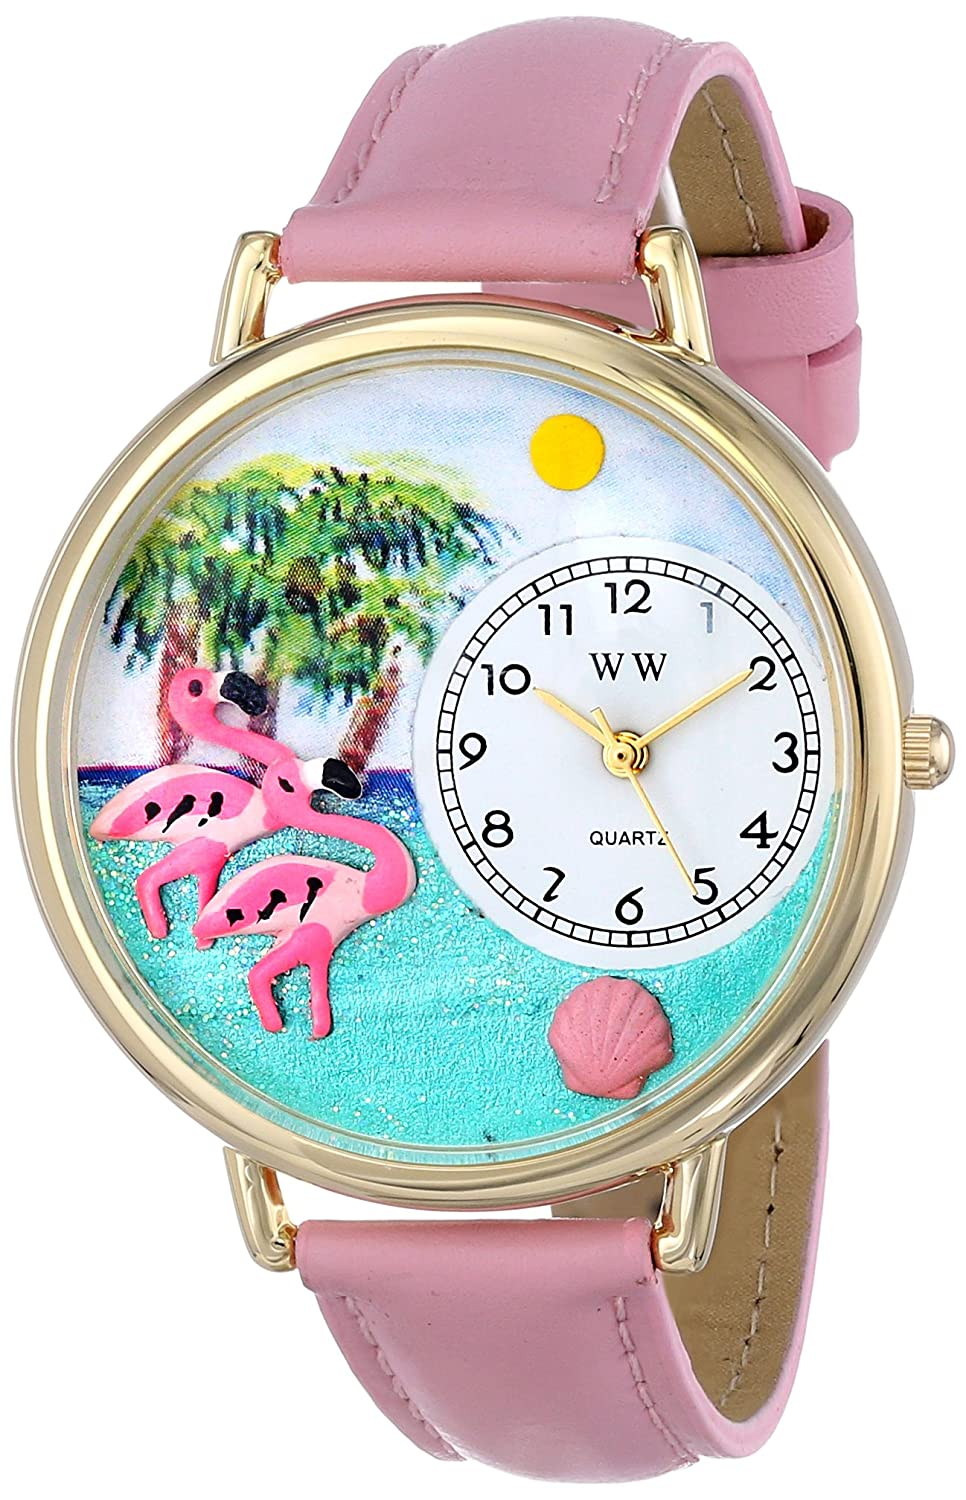 Whimsical Watches Women s G0150001 Flamingo Pink Leather Watch